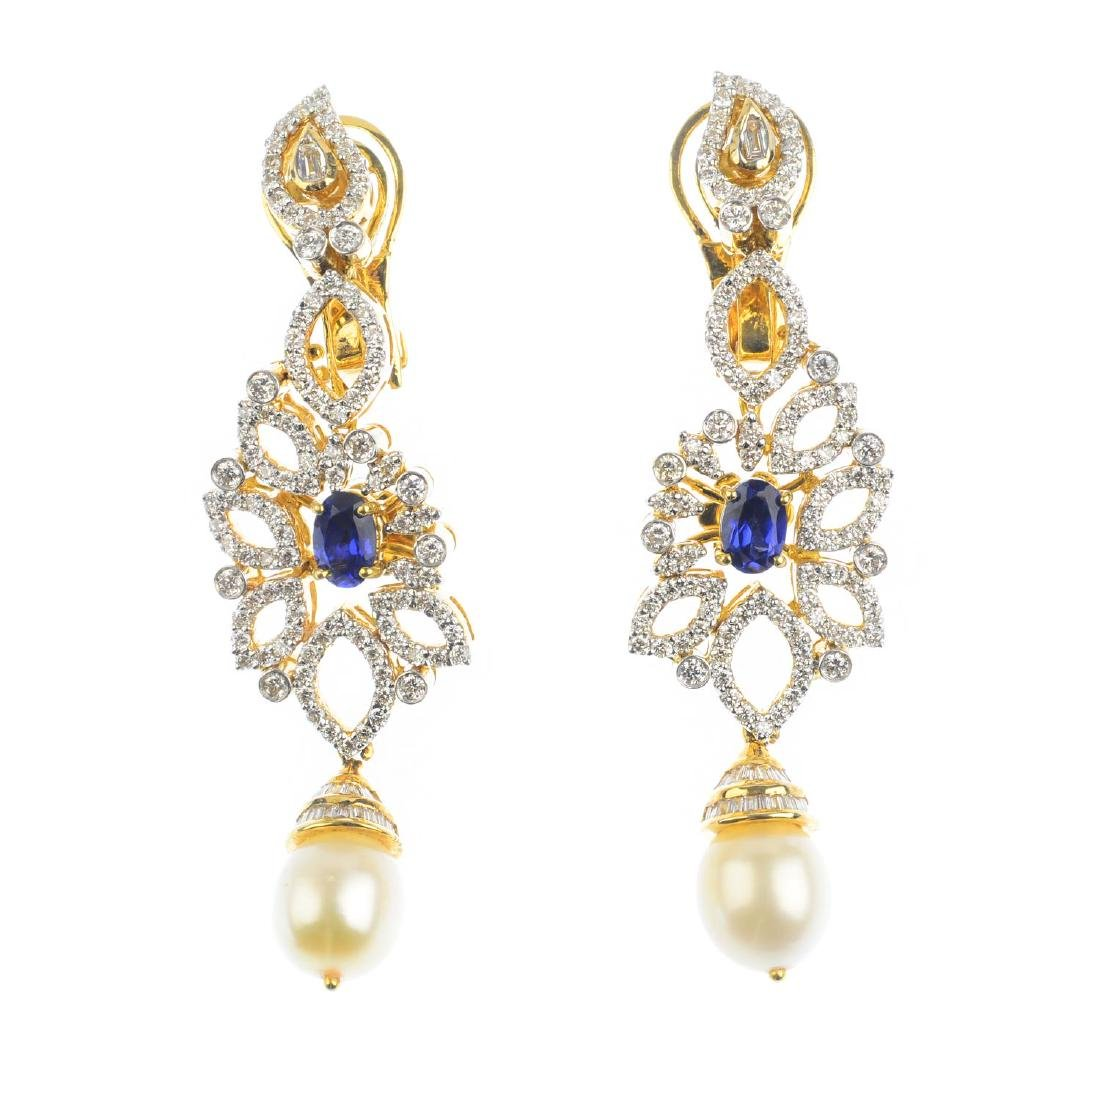 A pair of diamond and gem-set earrings. Each of